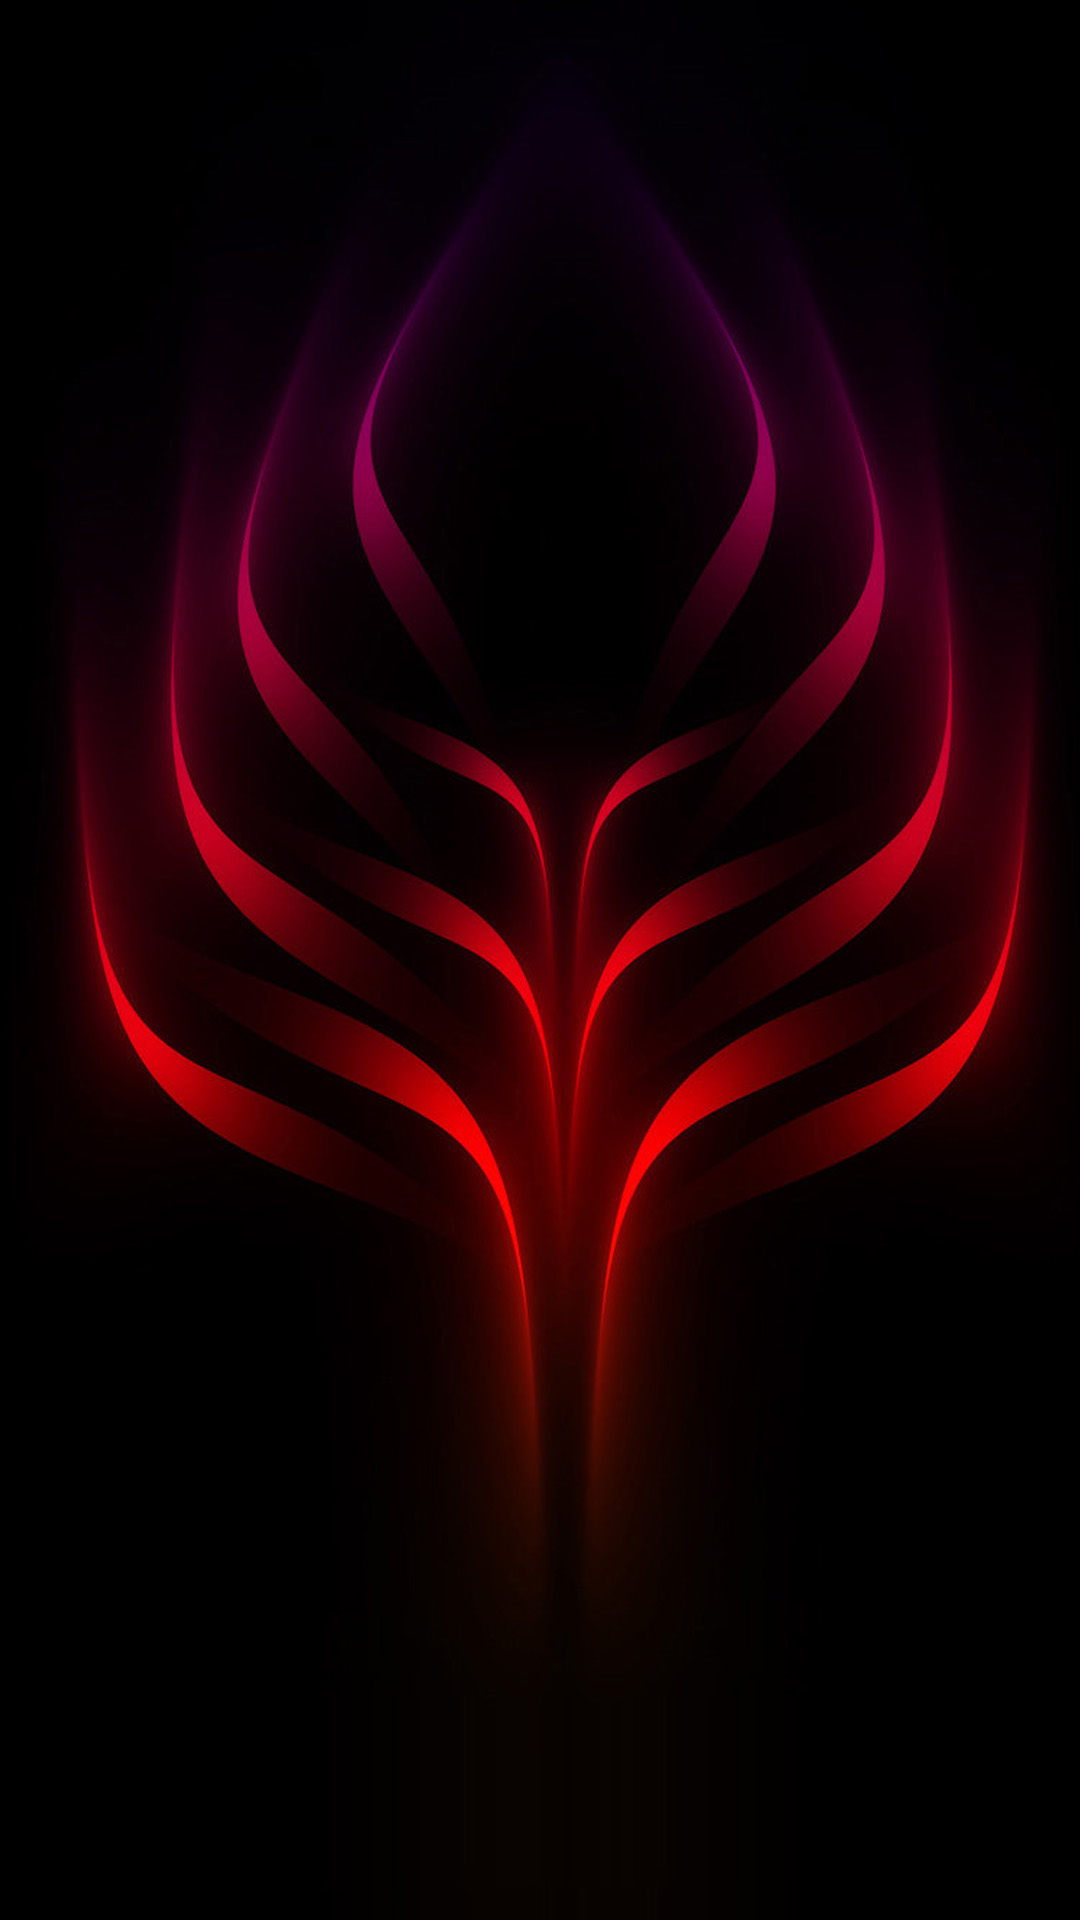 Abstract Red Iphone 7 Wallpaper Iphone Wallpaper